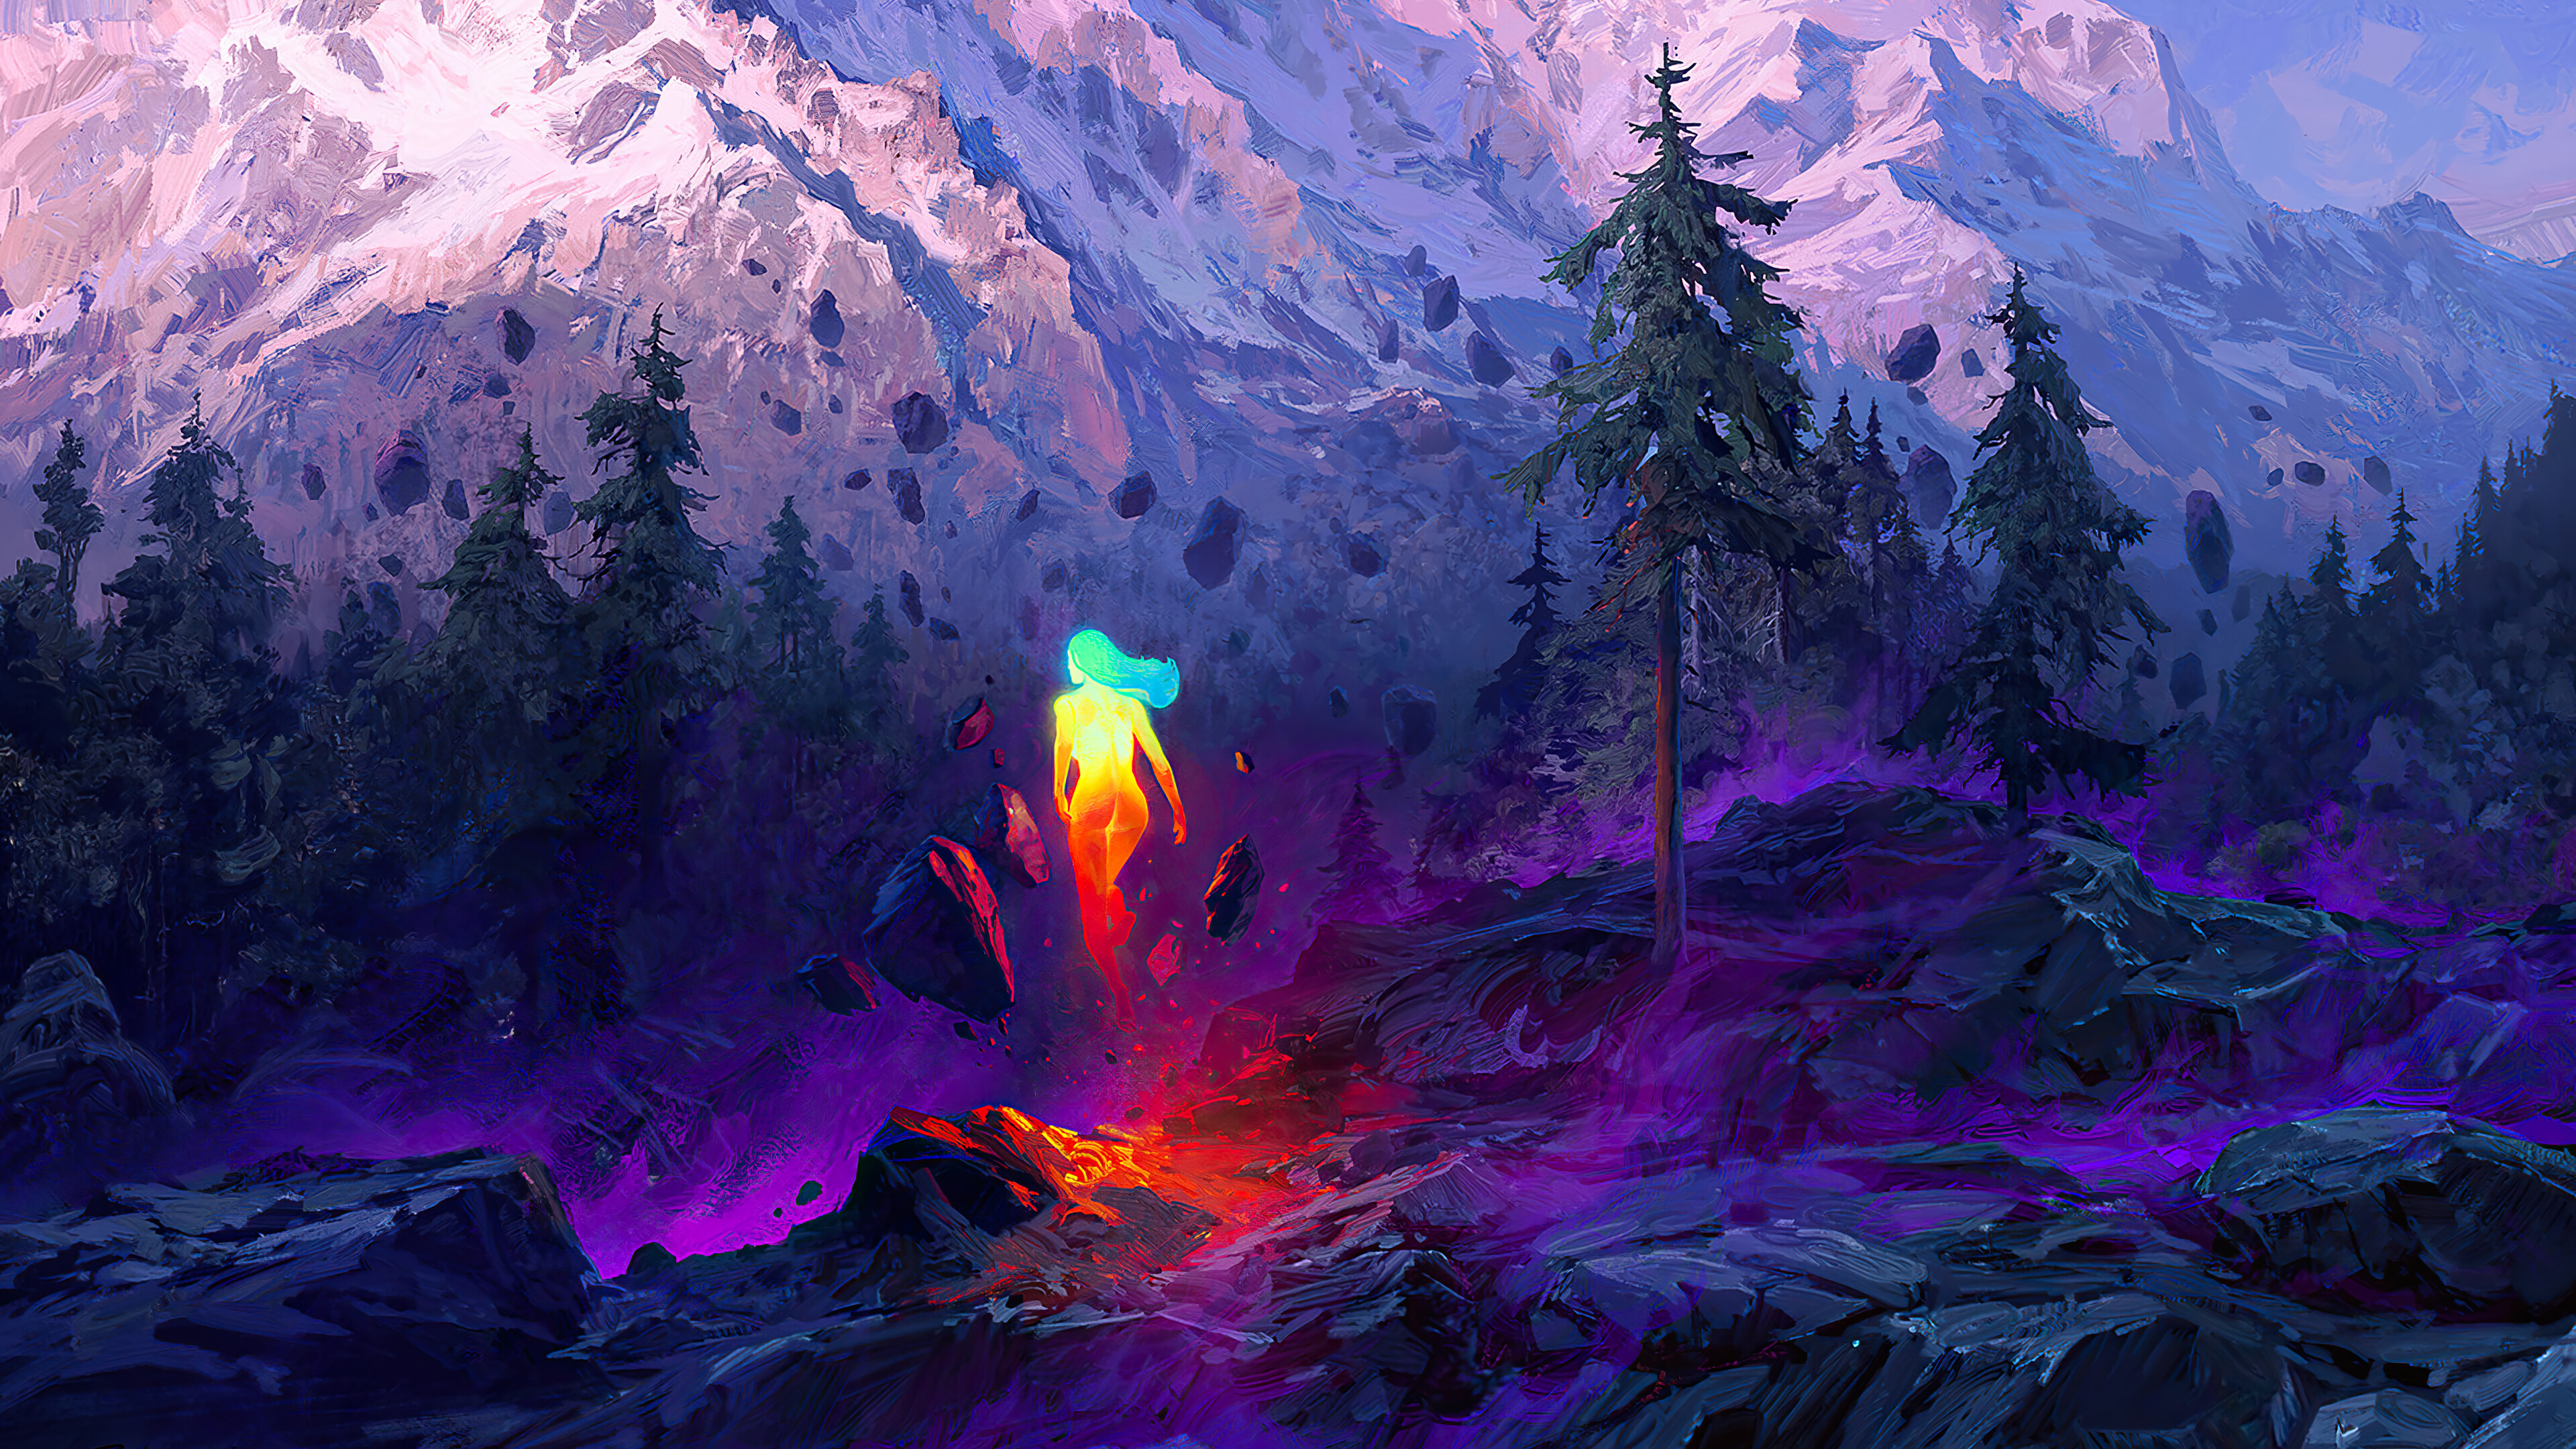 Wallpaper Lighted woman in mountain landscape